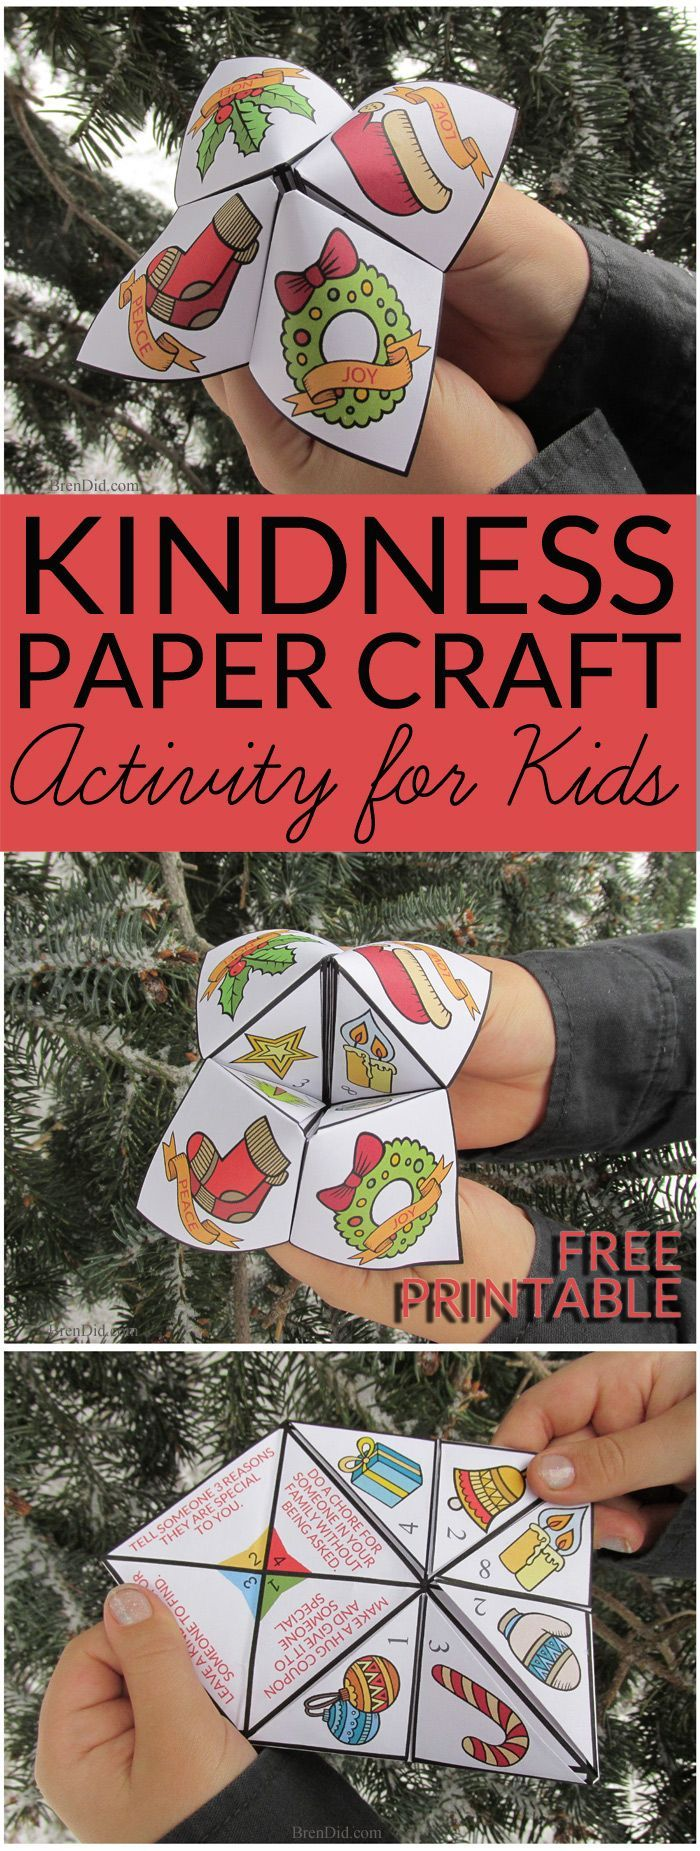 Encourage a spirit of generosity & giving in children with this giving activity for kids. This easy Christmas craft is a free printable Random Acts of Kindness for Kids Christmas Cootie Catcher. Learn how to fold a cootie catcher / paper fortune teller. ,  Teresa Jaquith